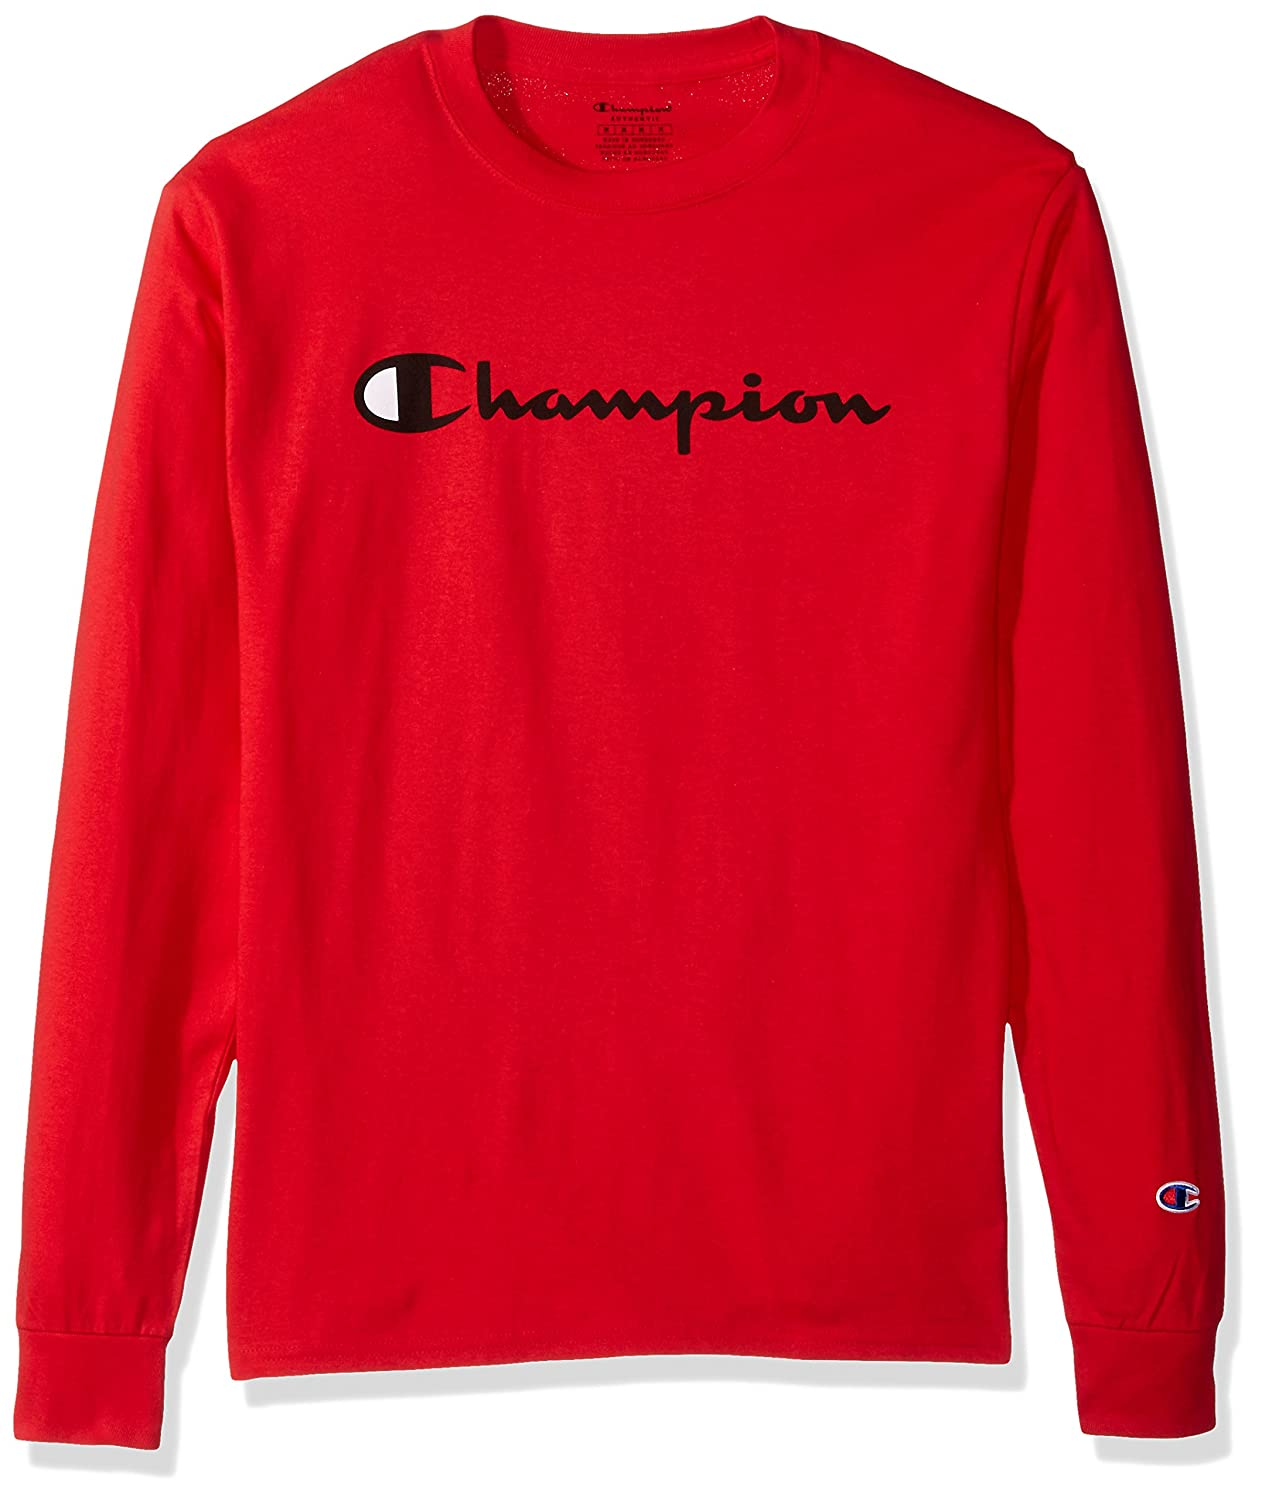 b987cf6b62b2 Champion Mens Classic Jersey Long Sleeve Graphic T-Shirt Shirt: Amazon.ca:  Clothing & Accessories